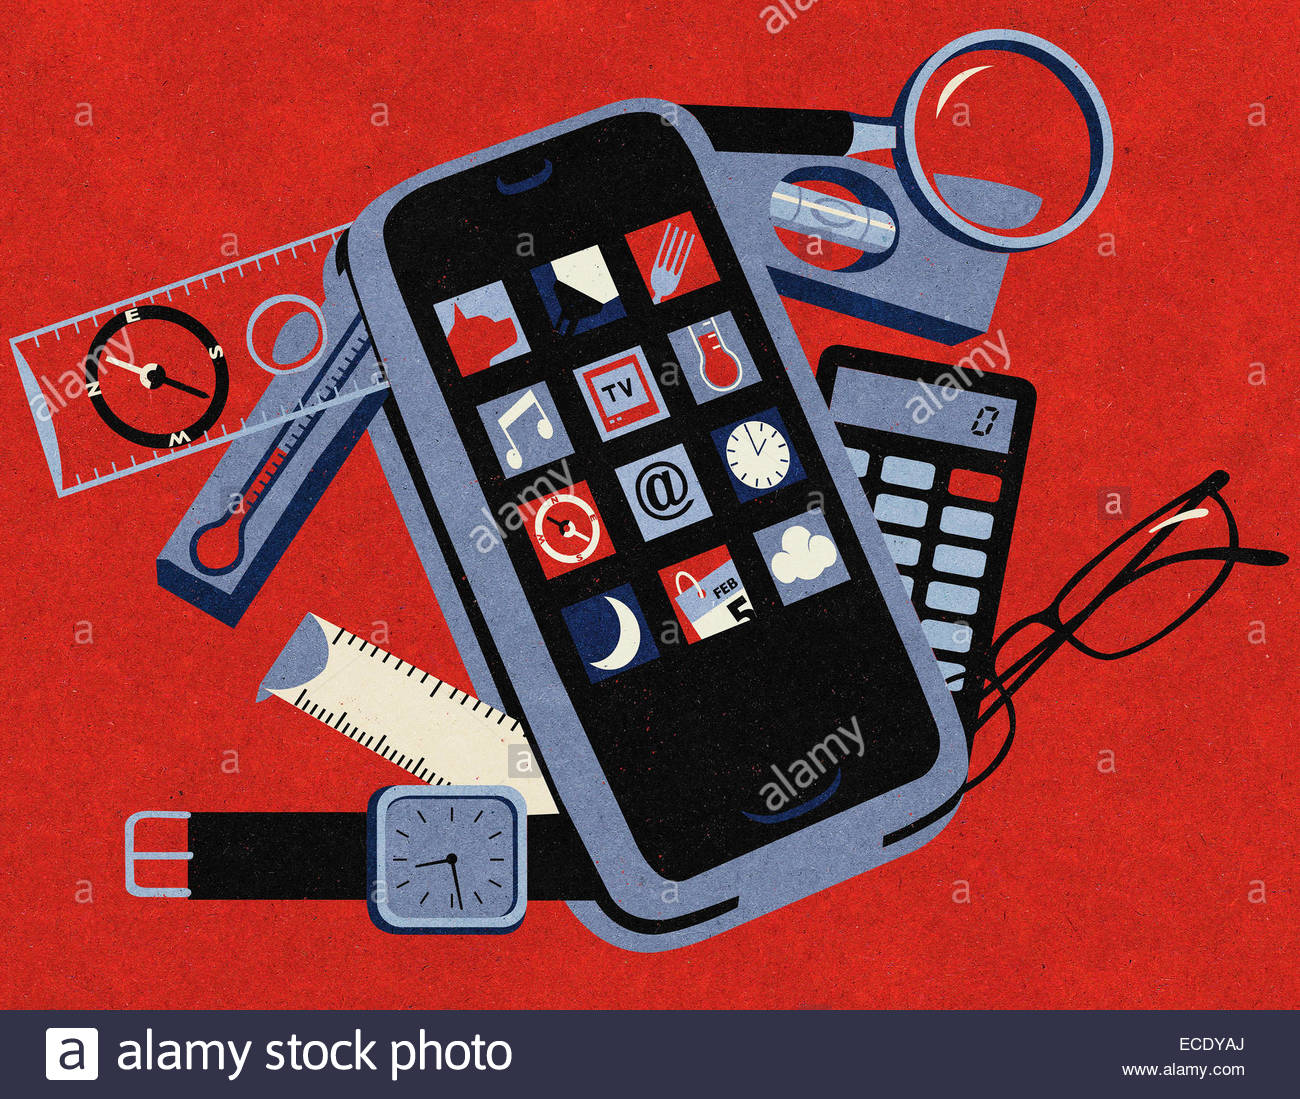 Useful mobile apps on handy smart phone tool kit - Stock Image